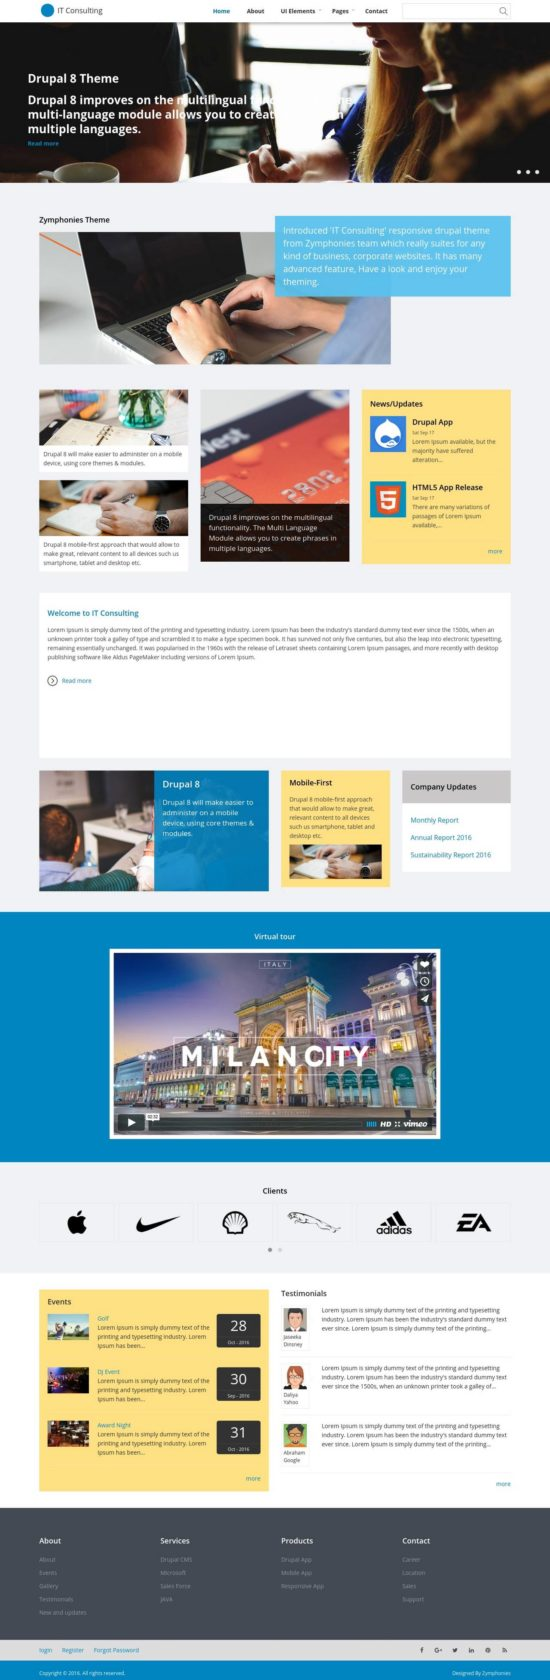 it consulting zymphonies drupal theme 01 550x1680 - IT Consulting Drupal Theme